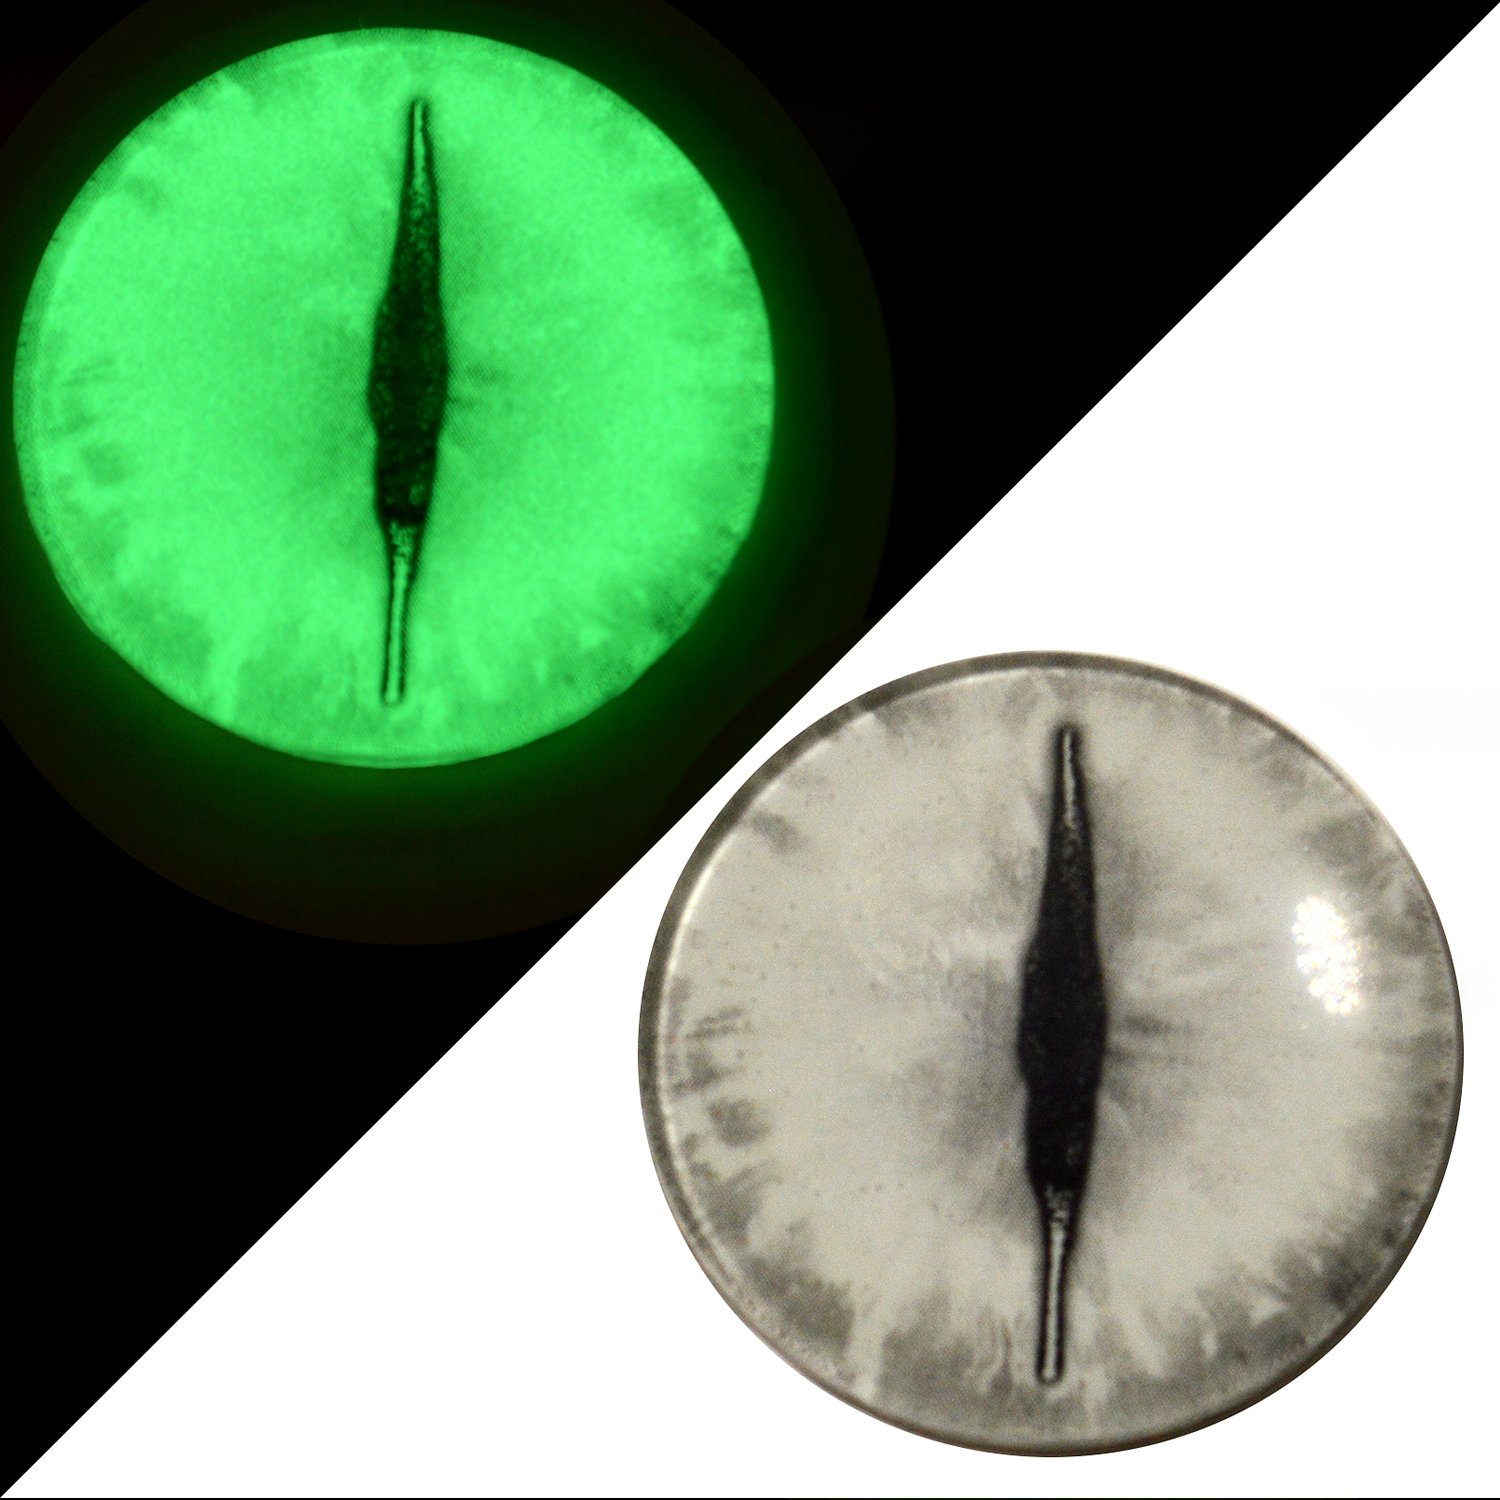 30mm Glow in the Dark Dragon Eyes - Glass Eyes Pair - Peel and Stick Adhesive Backing - For Art Dolls, Jewelry Making, Taxidermy, Scrapbooking, and More